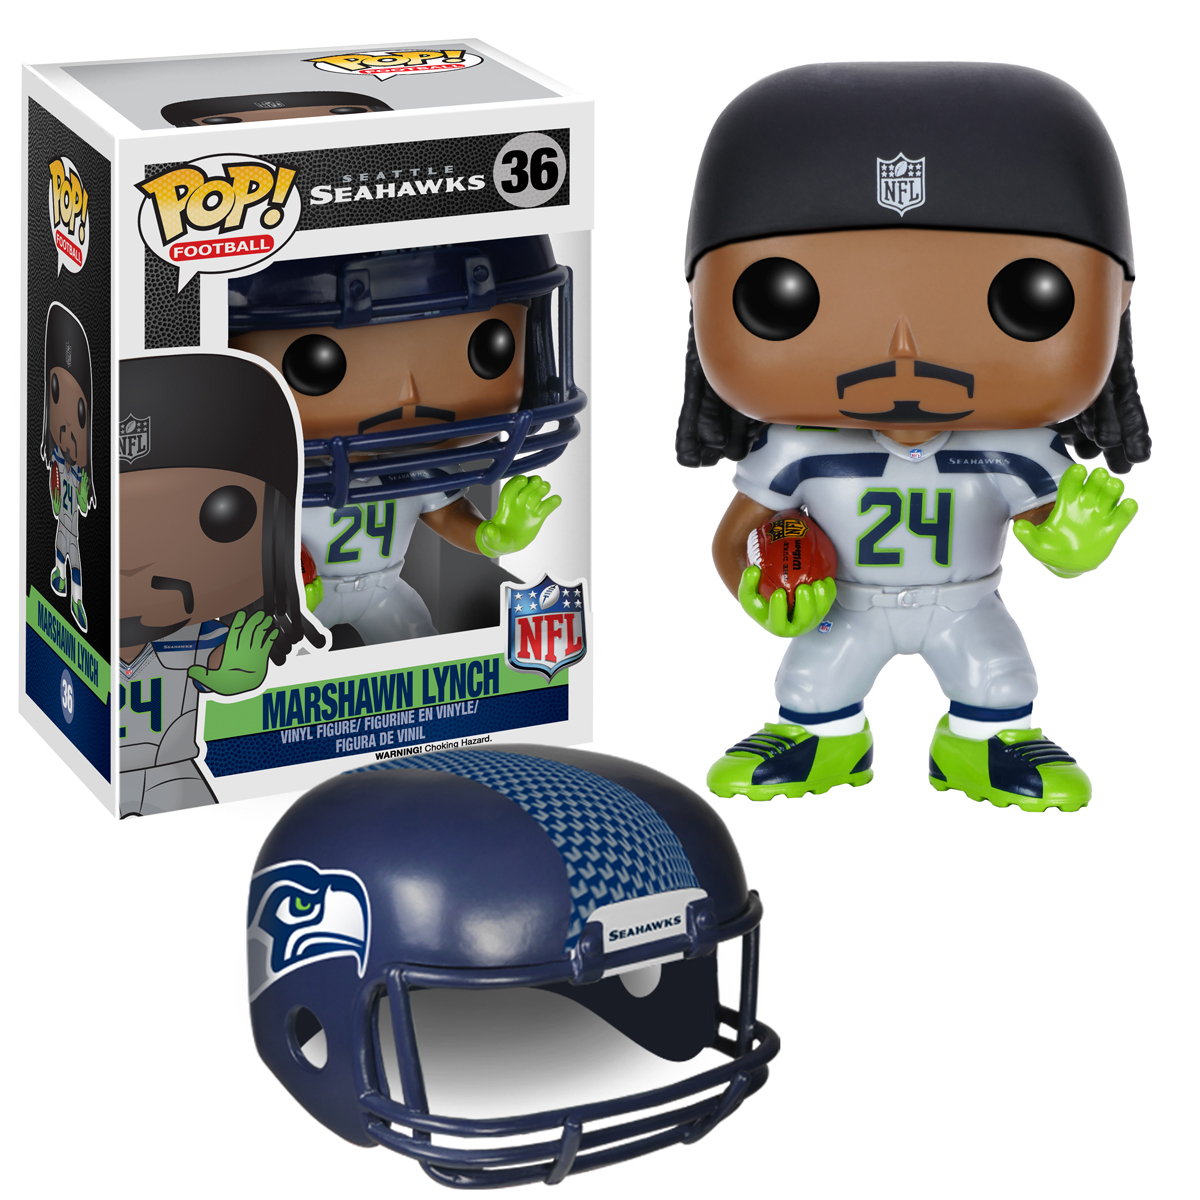 POP NFL MARSHAWN LYNCH VER 2 VINYL FIG